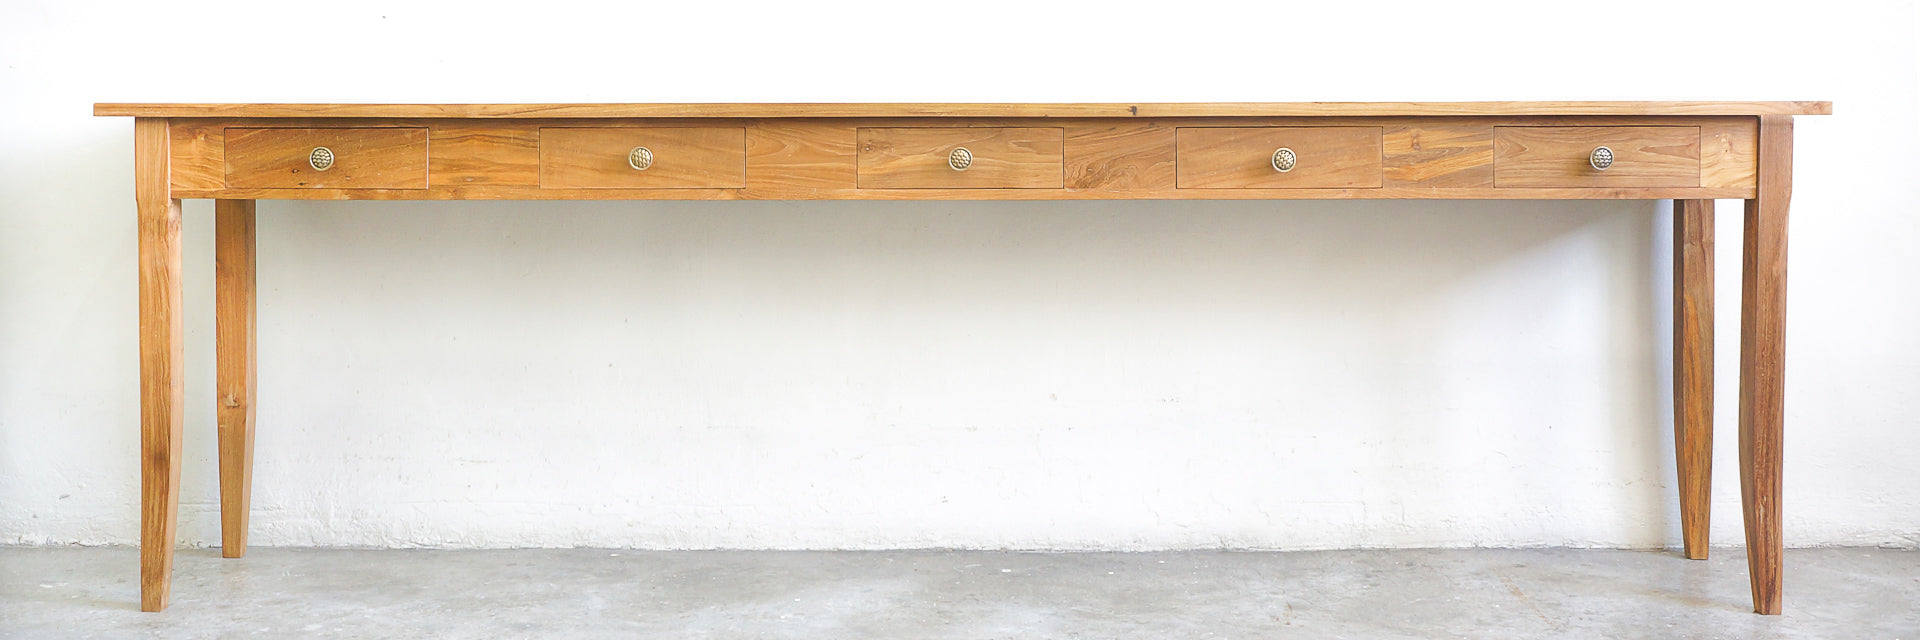 teak furniture console